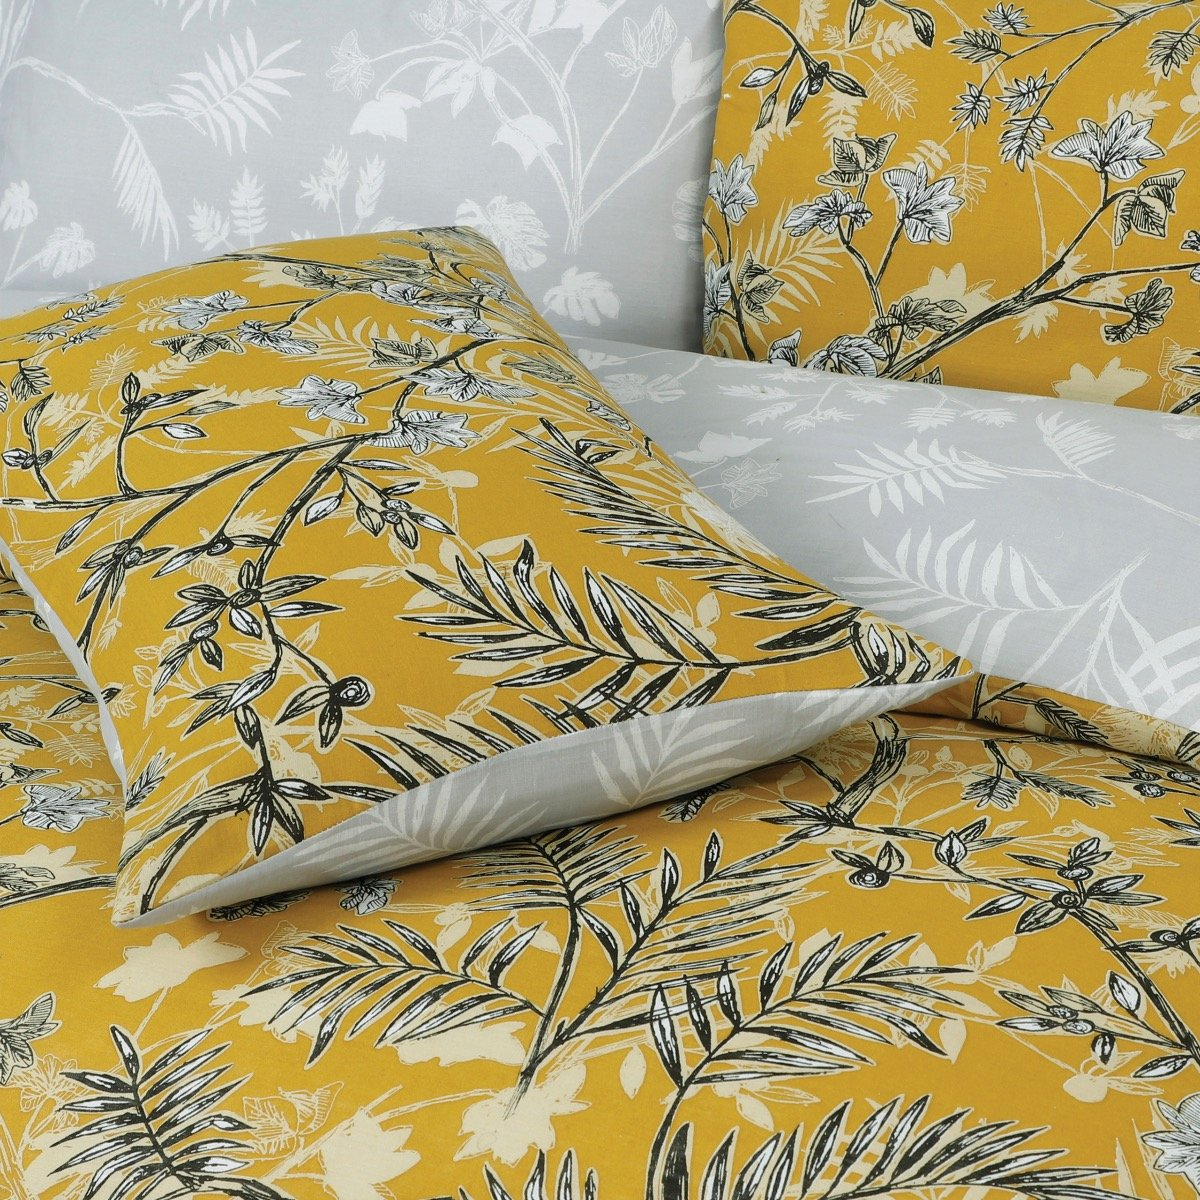 Monkey Trees Mustard Bedding - Reversible Duvet Cover and Pillowcase Set